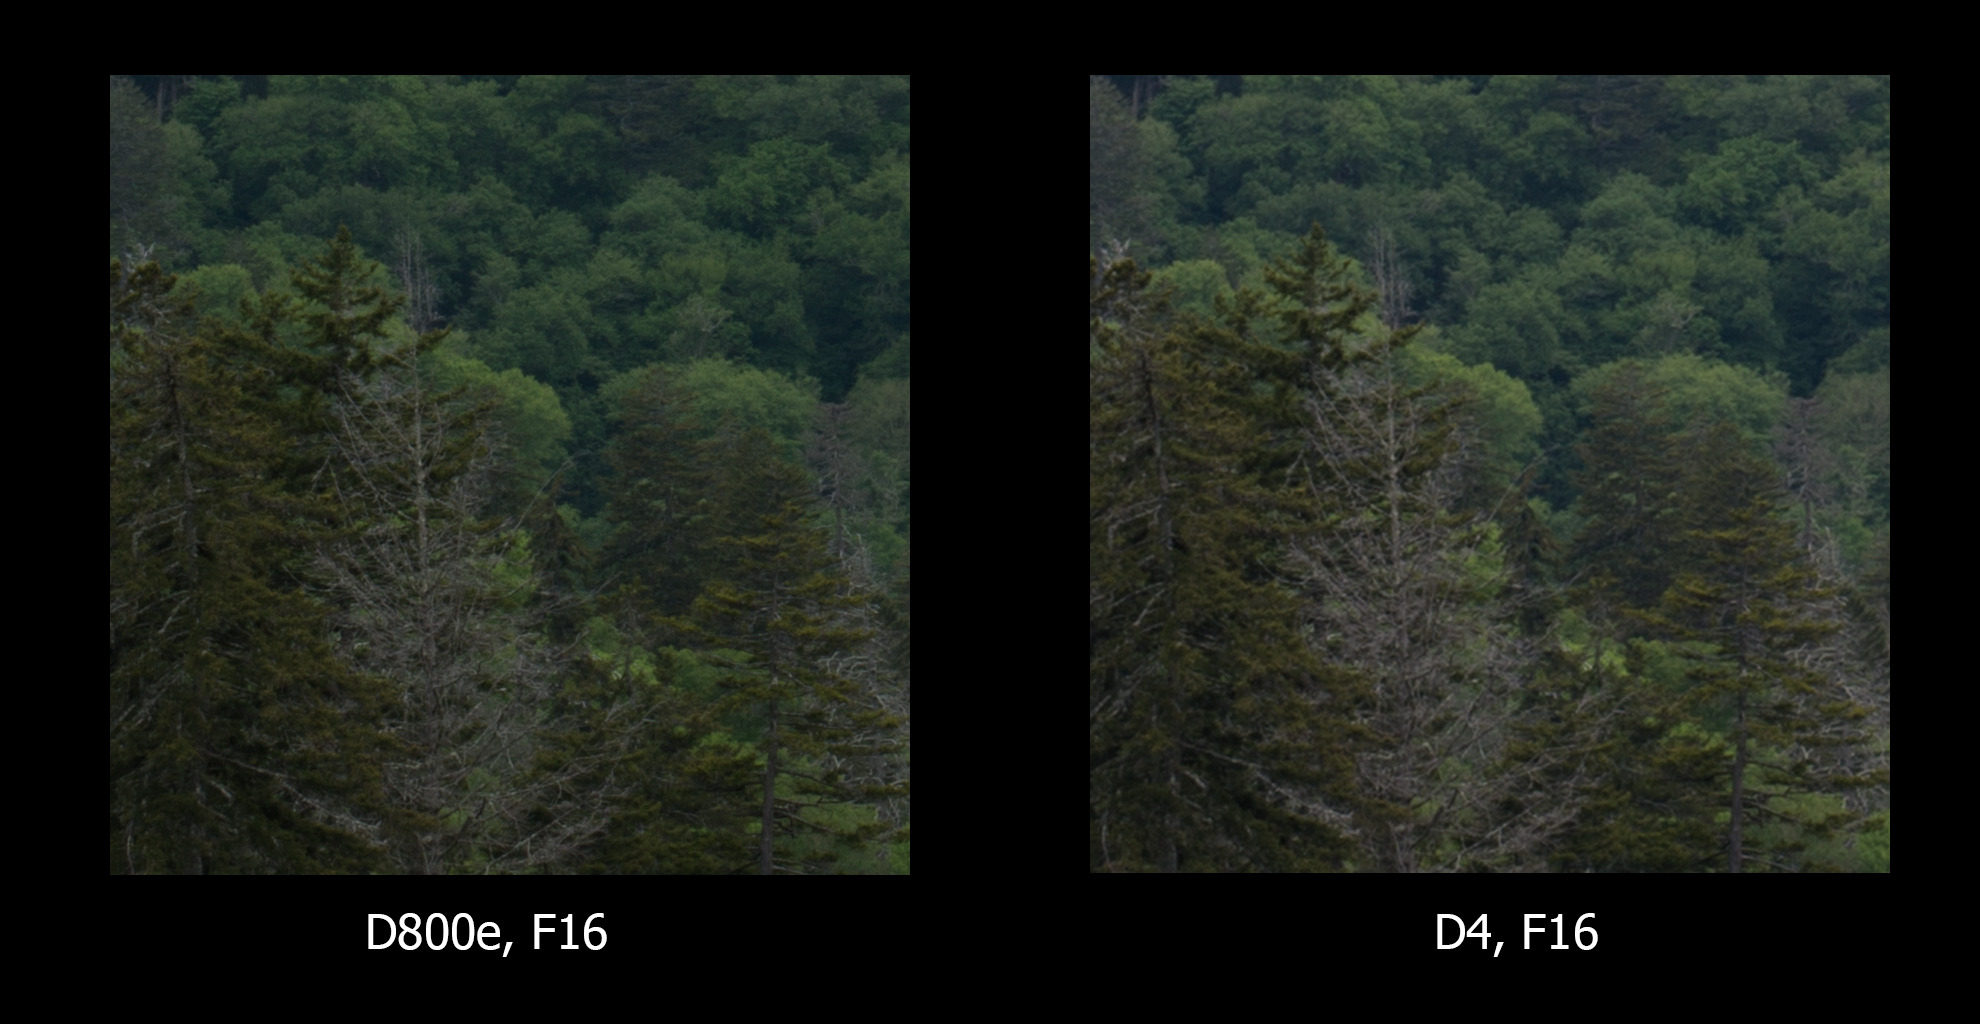 D4 upsized to D800e size, this time, F/16 for both